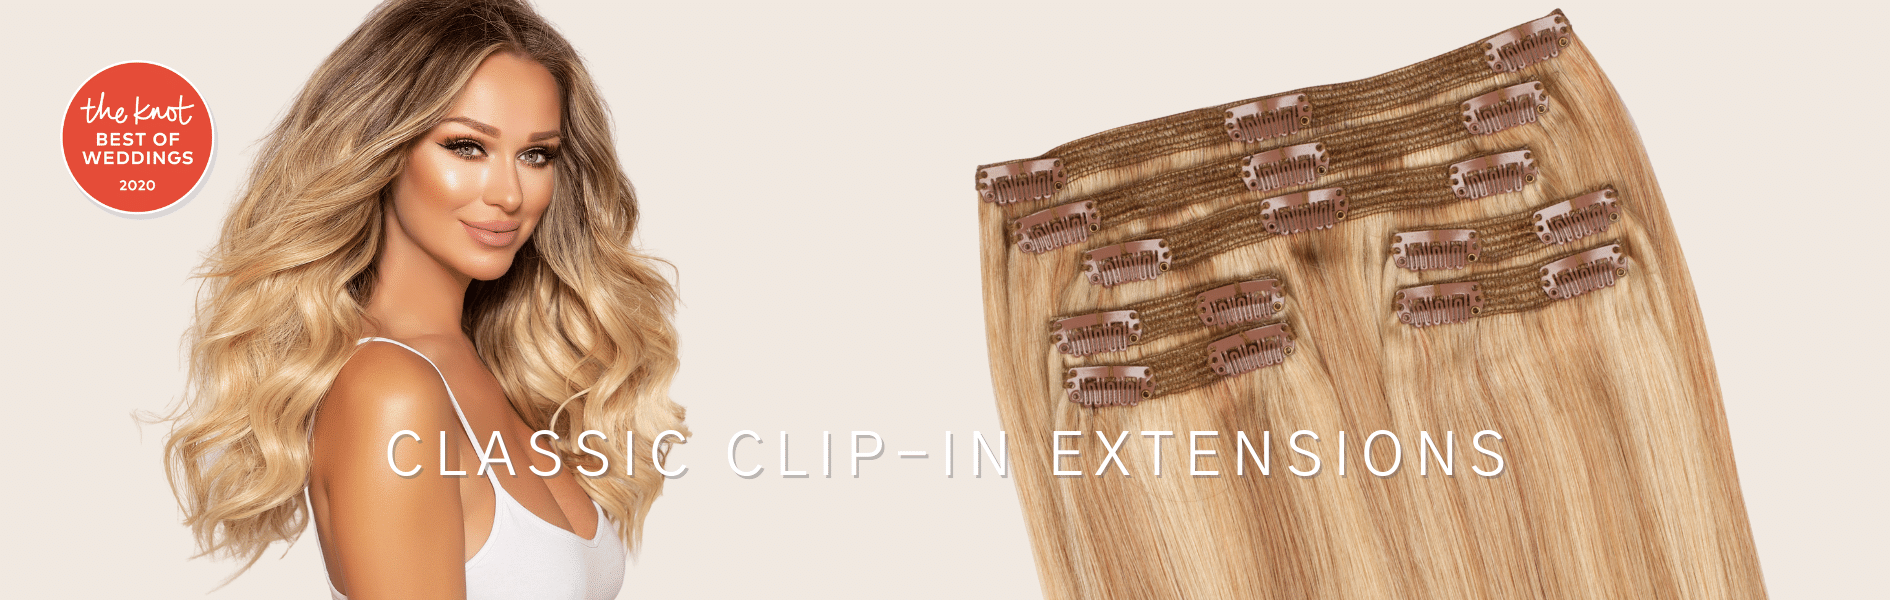 classic-clip-in-extenstions-cashmere-hair.png